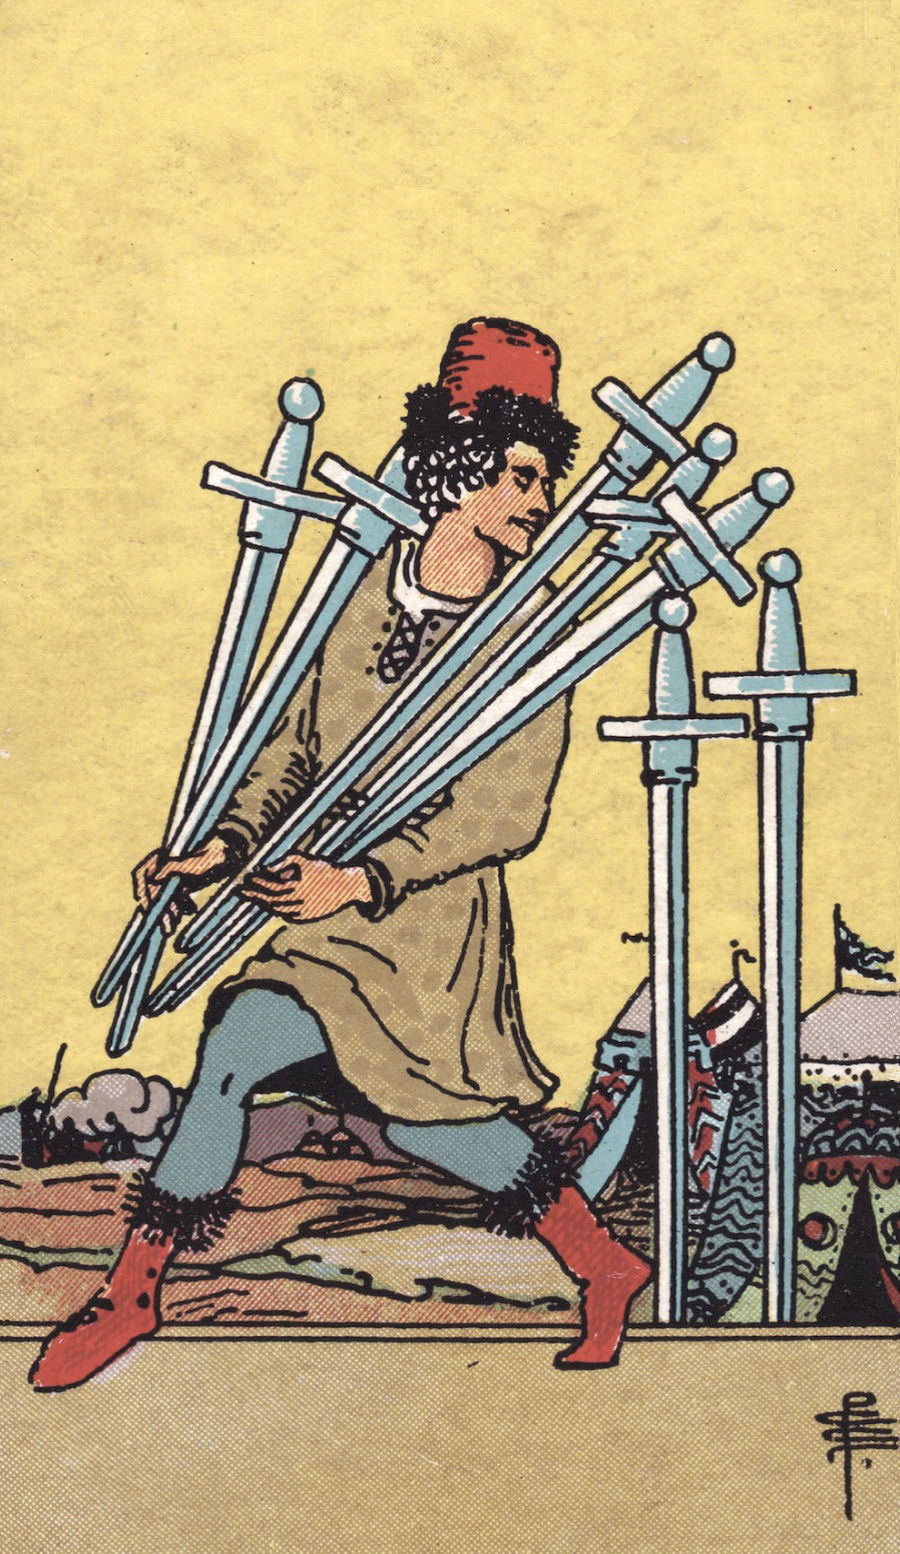 The Seven of Swords - This card is more than a little naughty. Jauntily sneaking off with more swords than you can carry reflects the thrill of having a secret - a hidden kink, new relationship, or even affair. Be sure to stop and consider if this secret is benign or whether it's hurtful to others. Sometimes the temporary pleasure isn't worth t